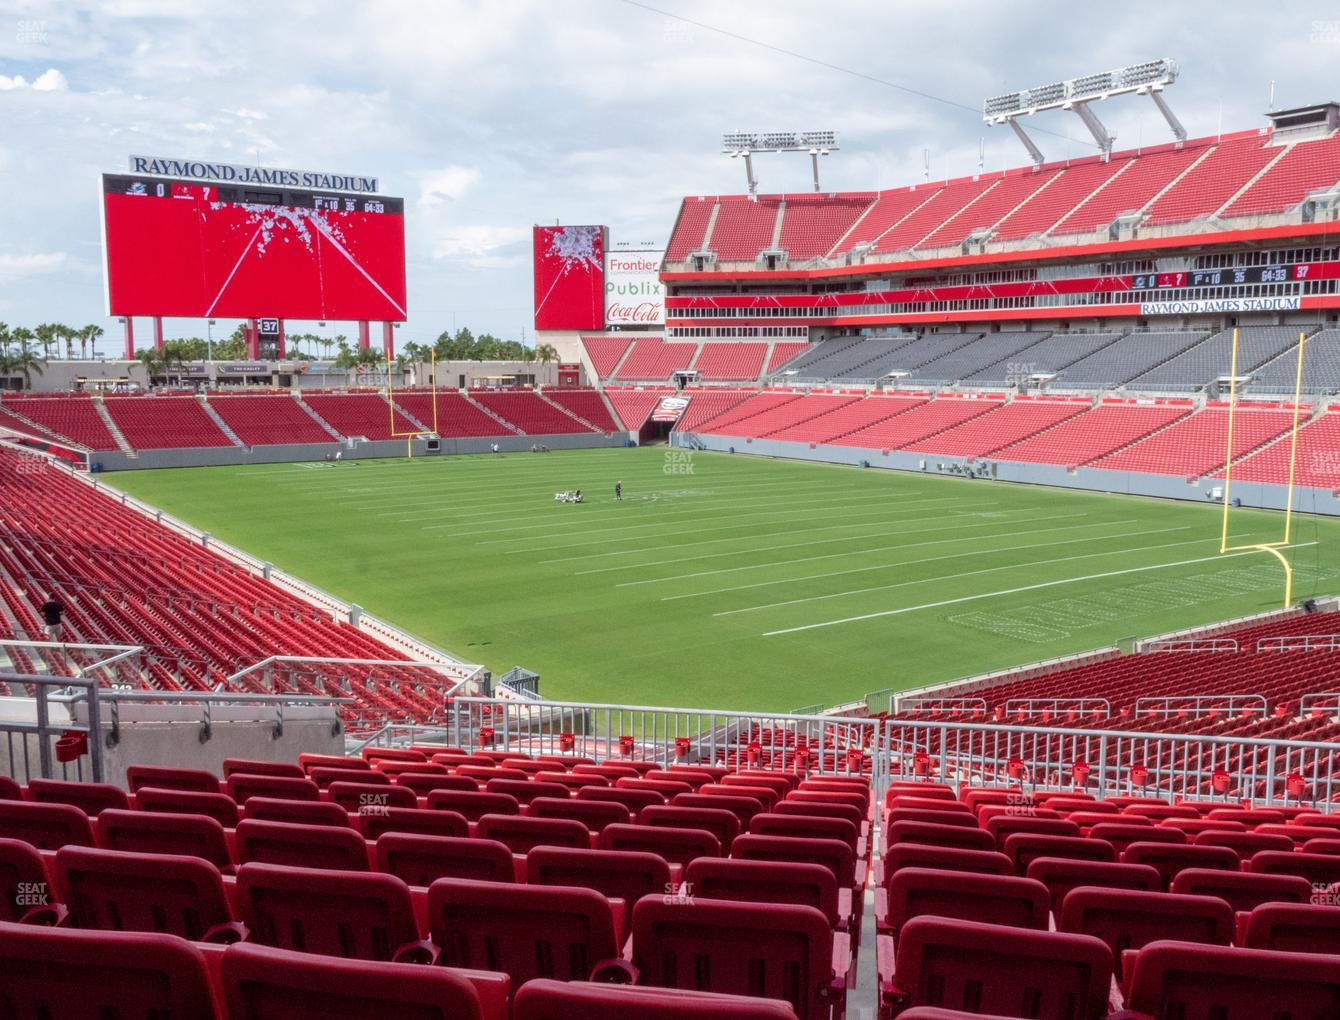 raymond james stadium section 244 seat views seatgeek raymond james stadium section 244 seat